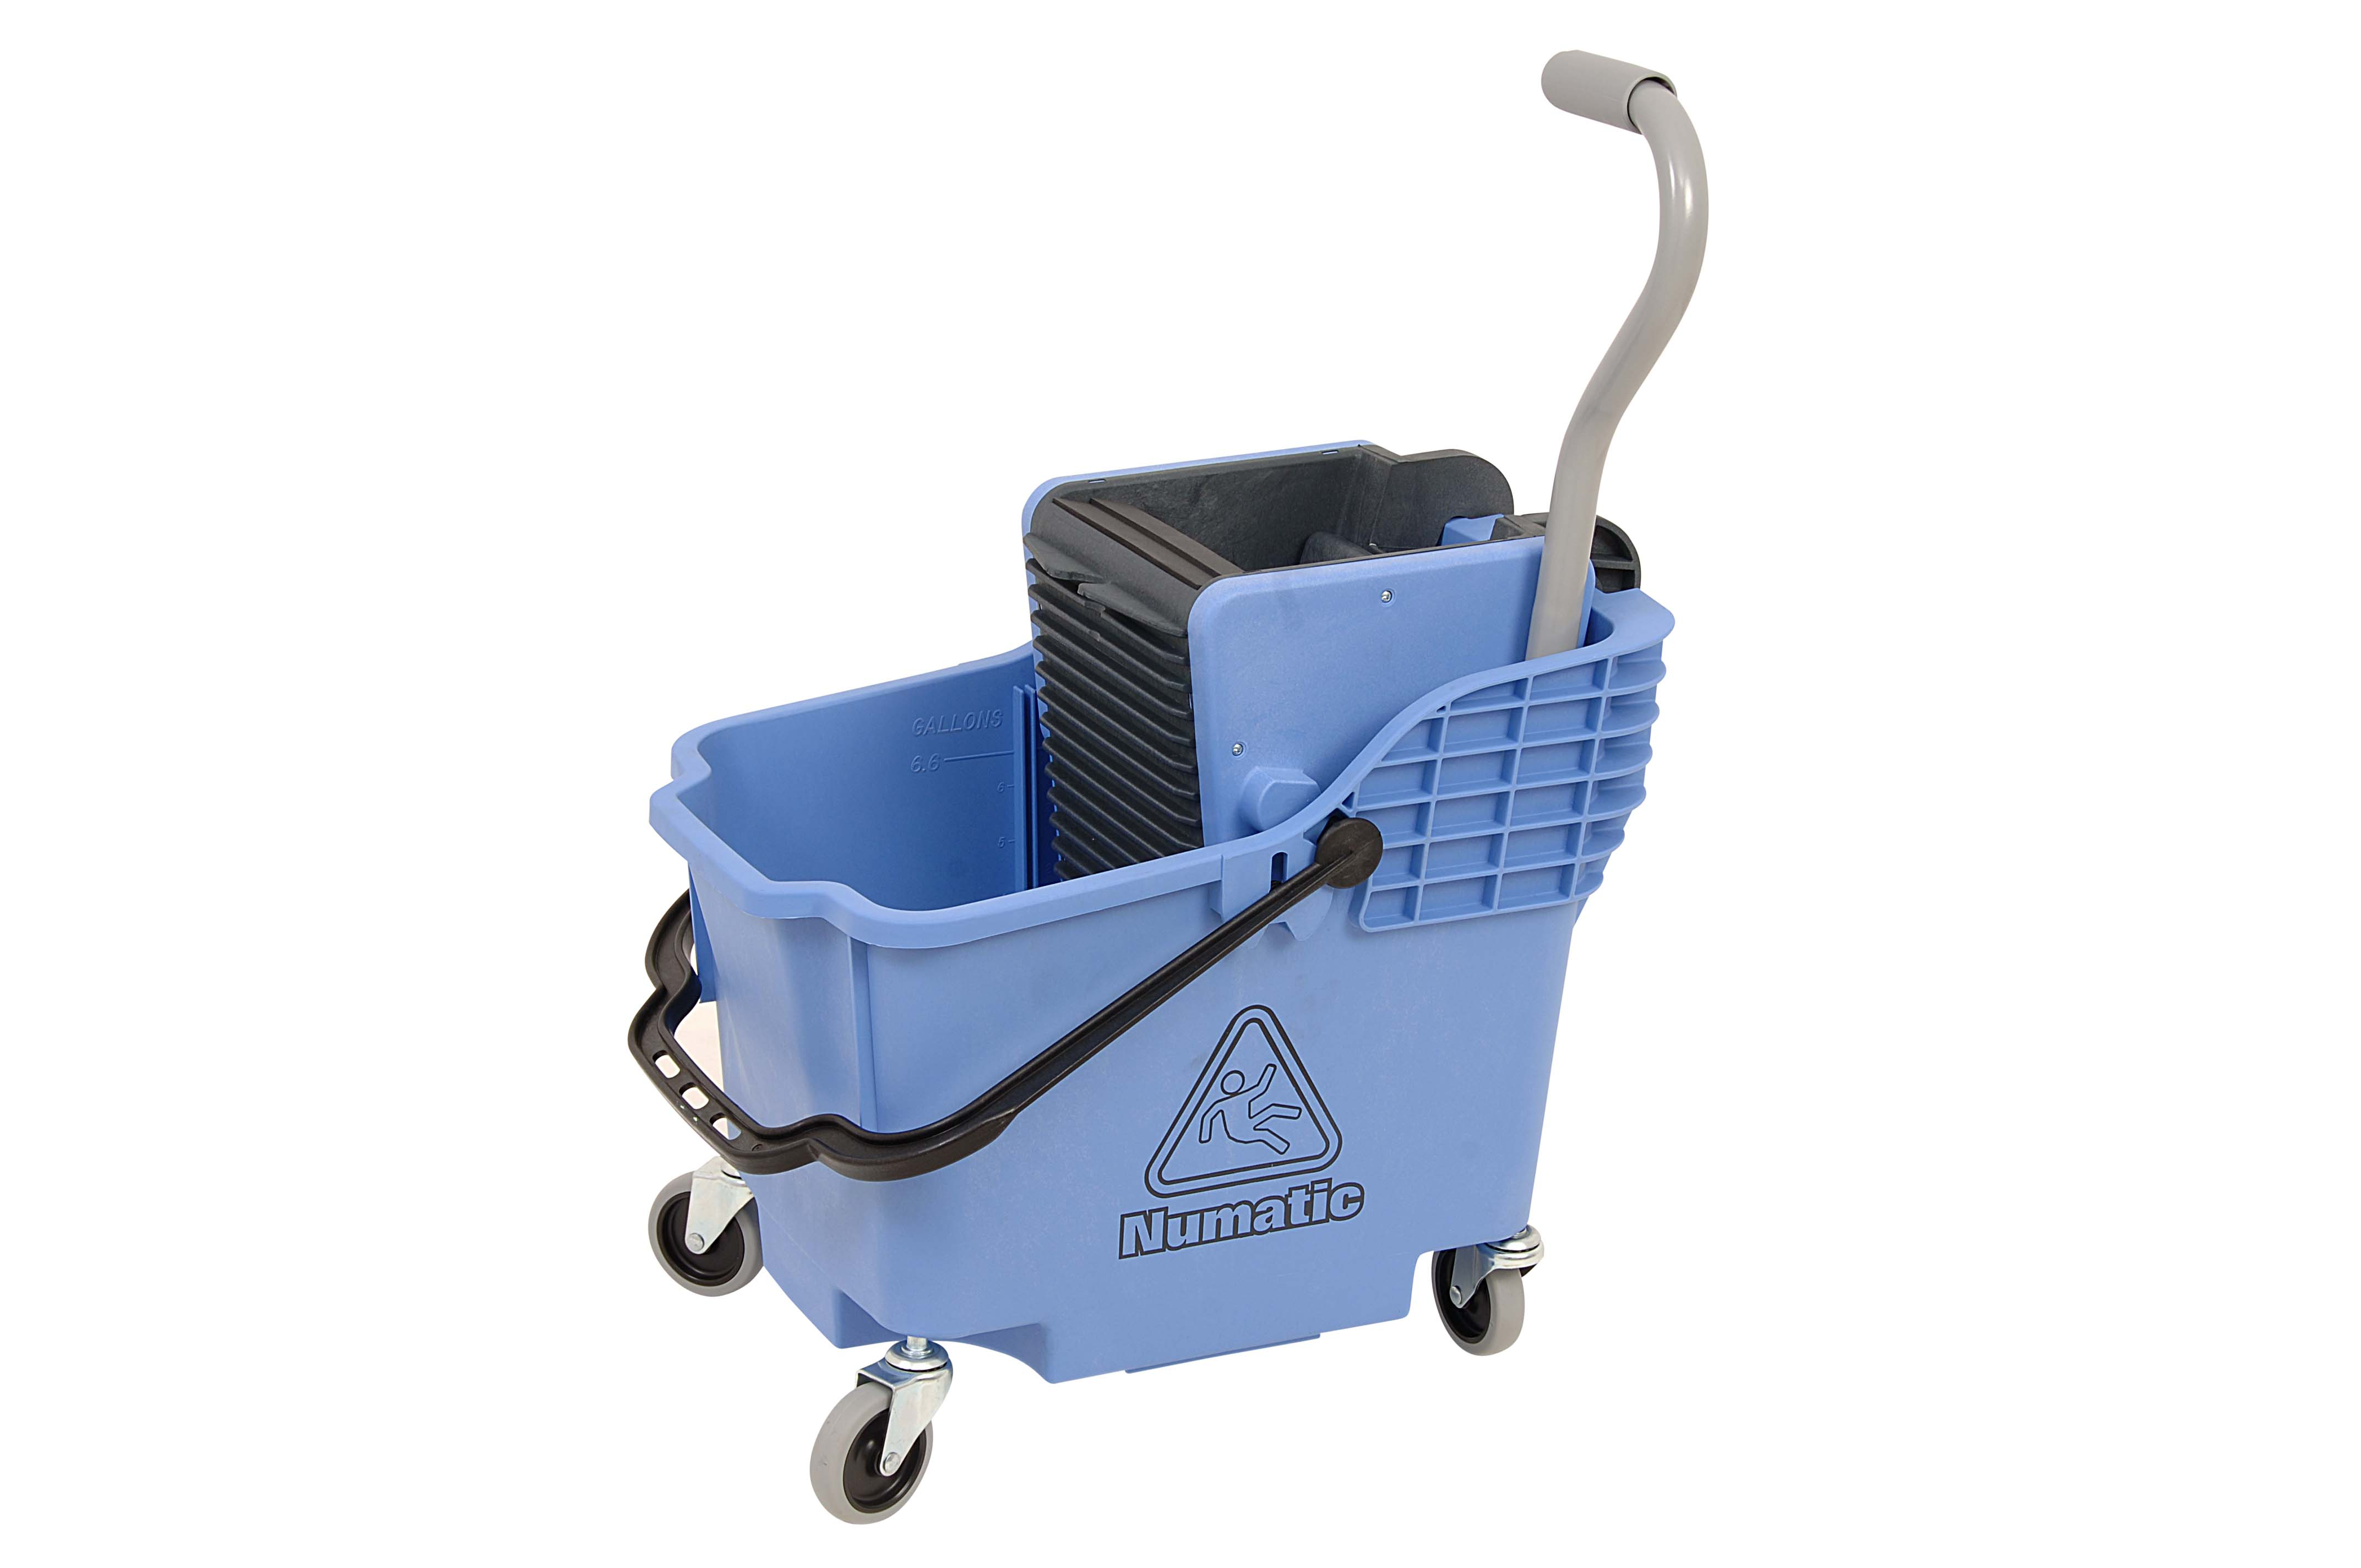 NUMATIC PLASTIC BUCKET & WRINGER - BLUE